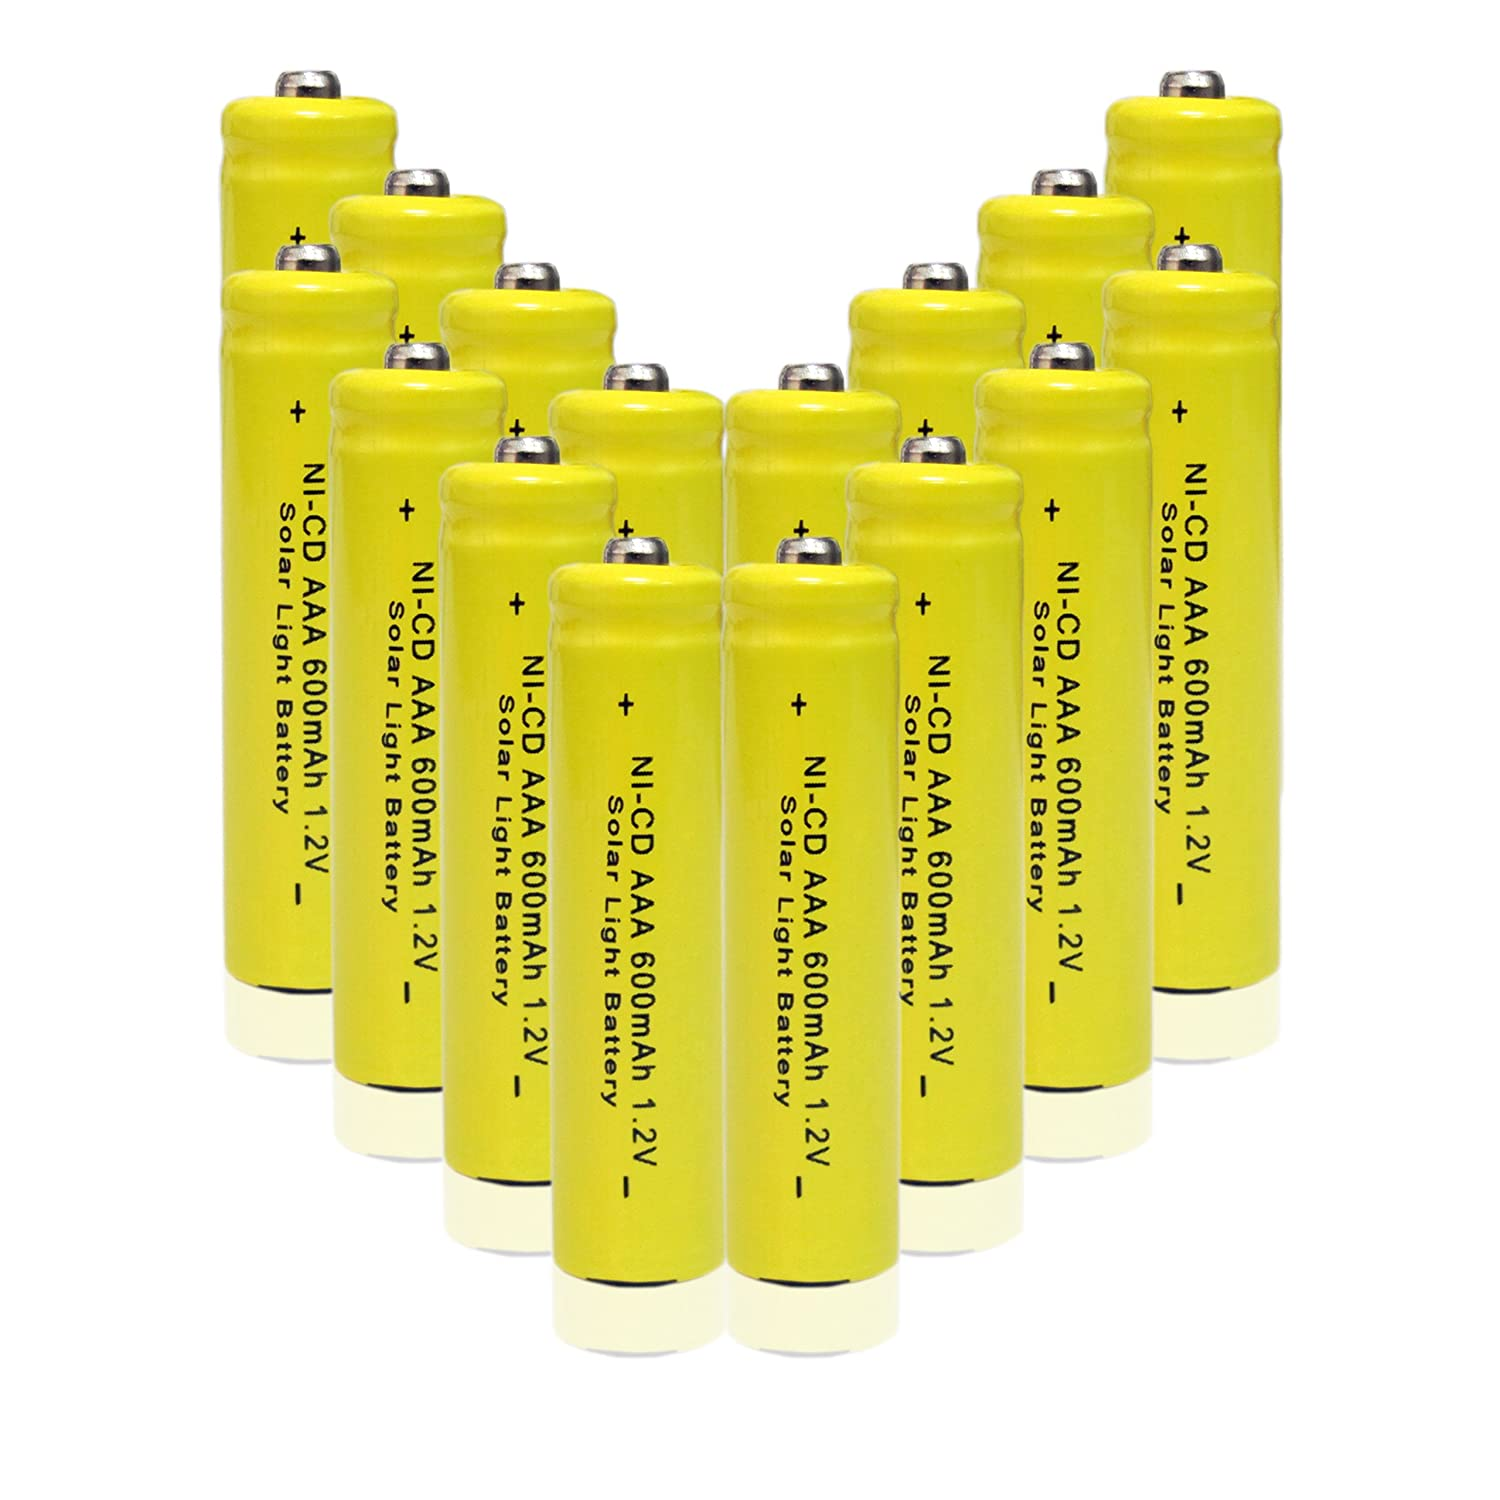 geilienergy 1 2v aaa nicd 600mah triple a rechargeable